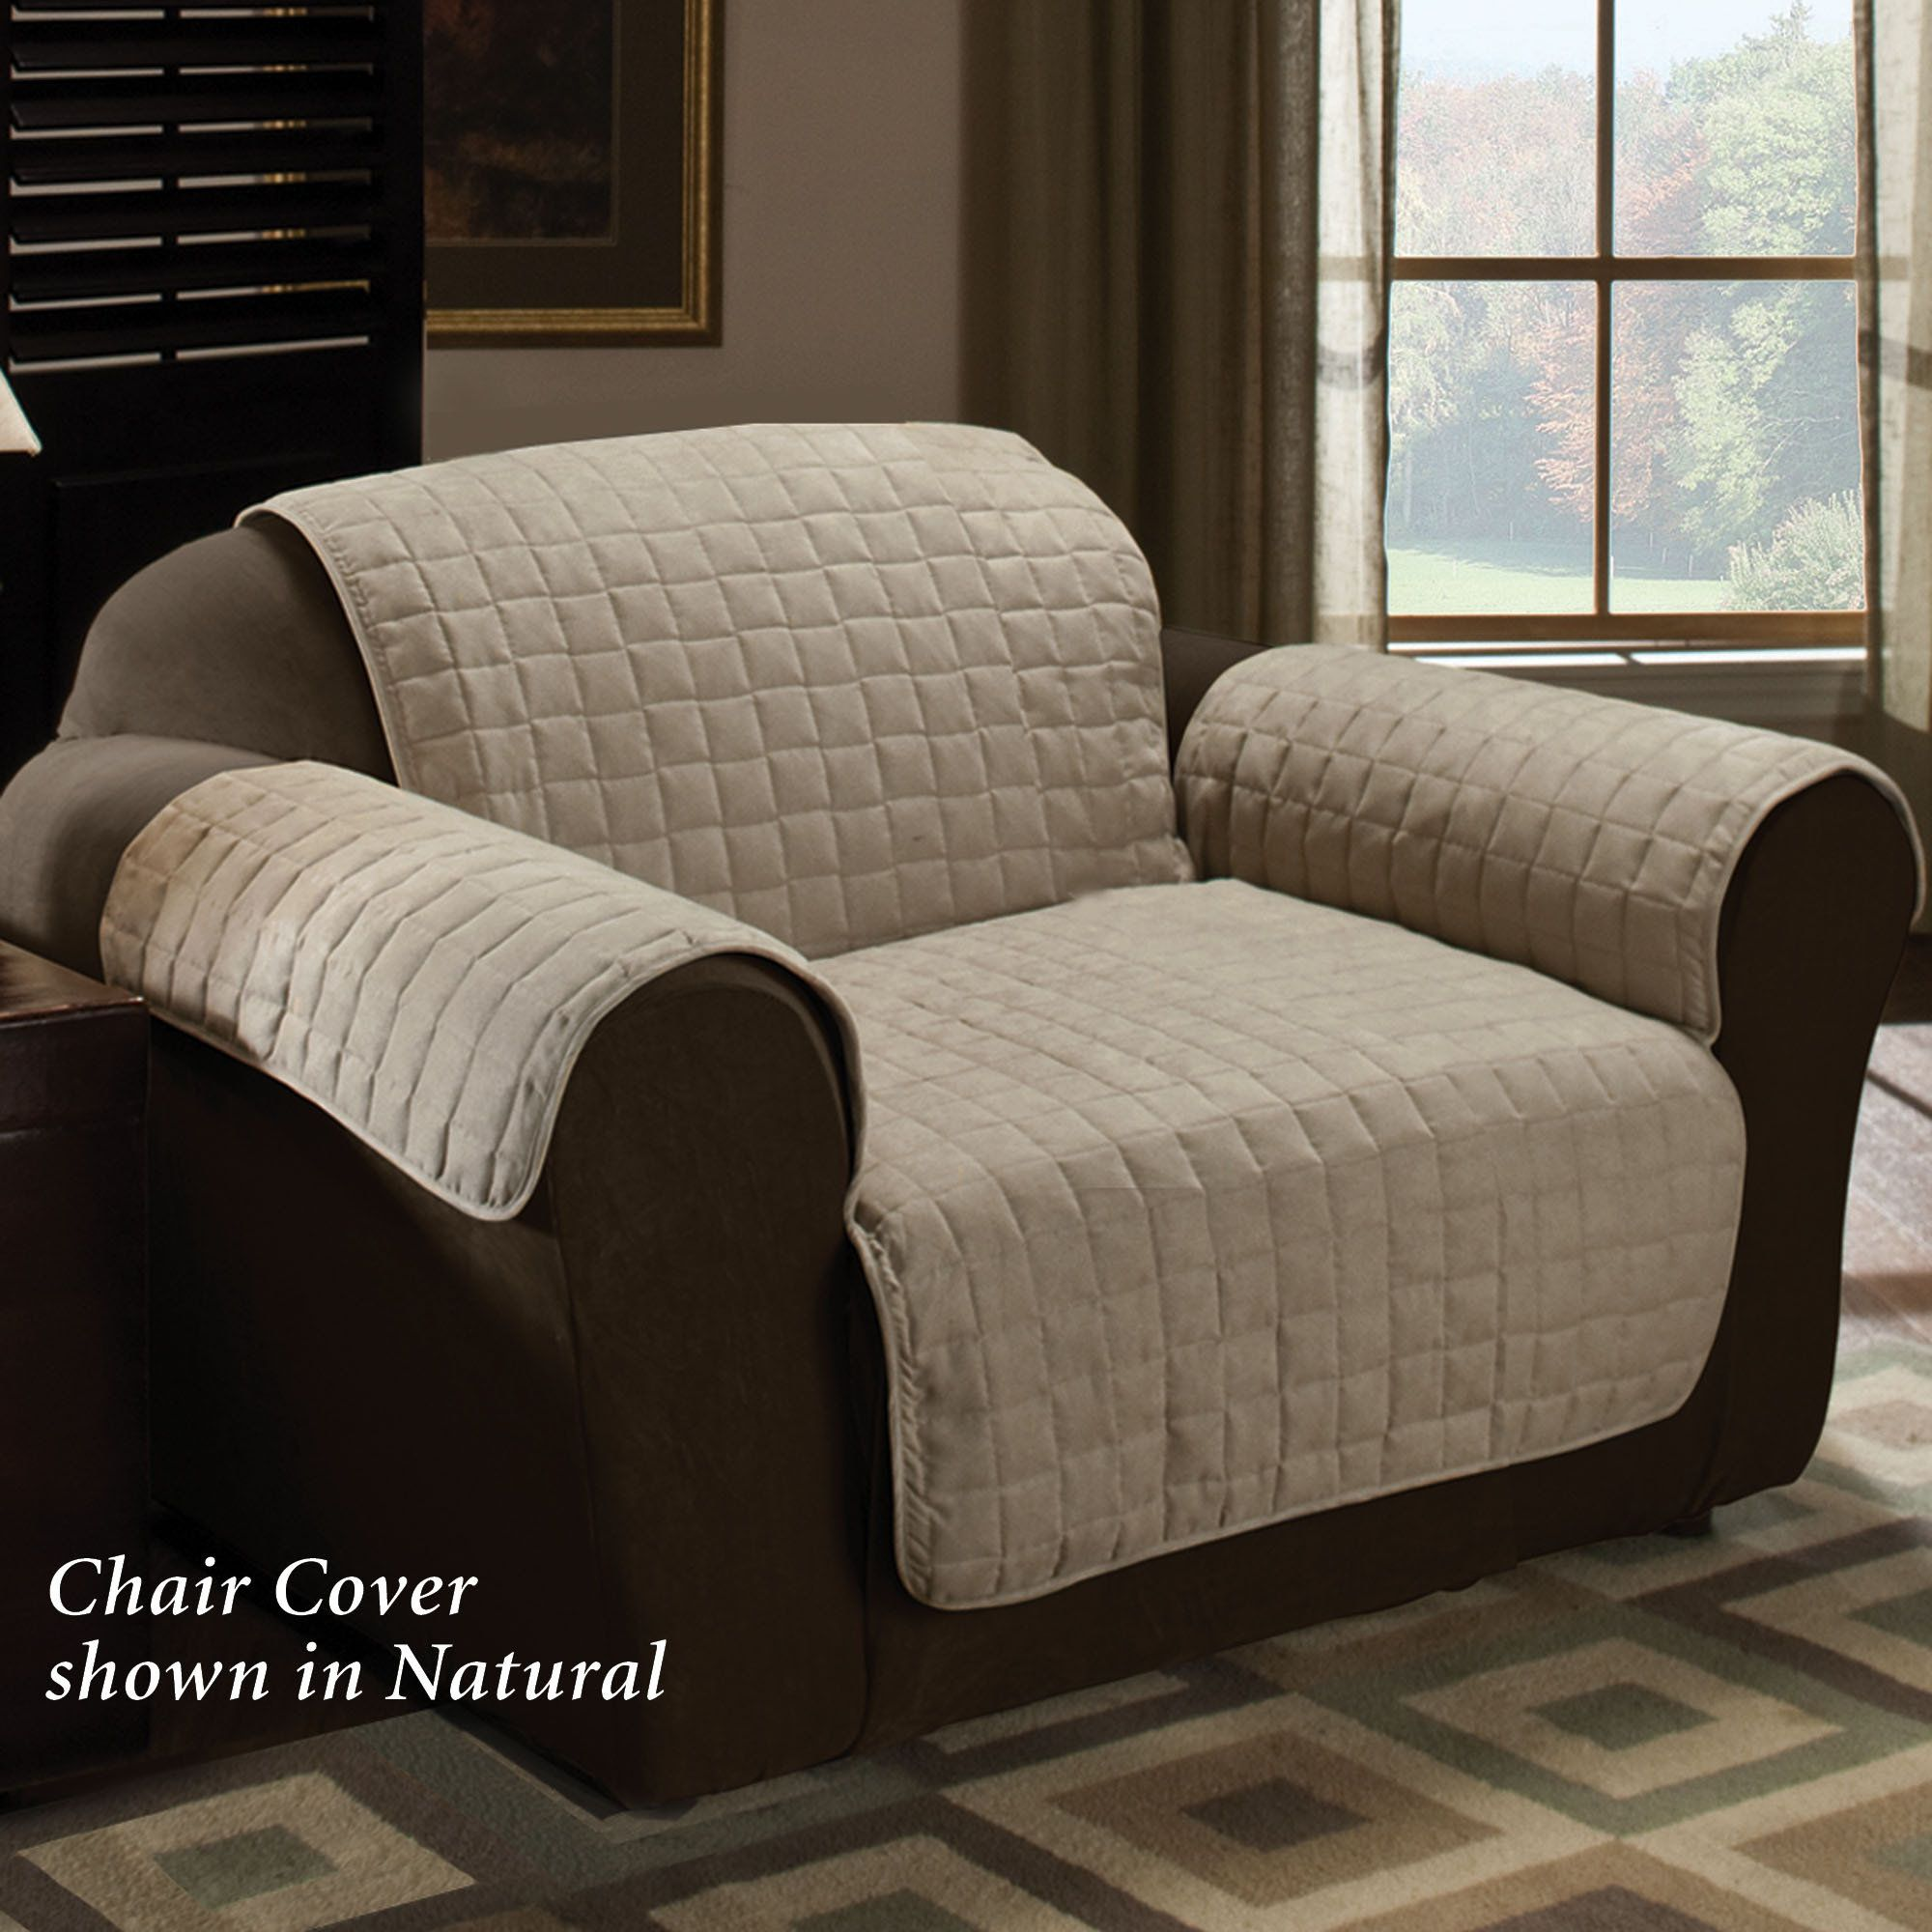 Pet Covers For Sofas And Loveseats Deluxe Furniture